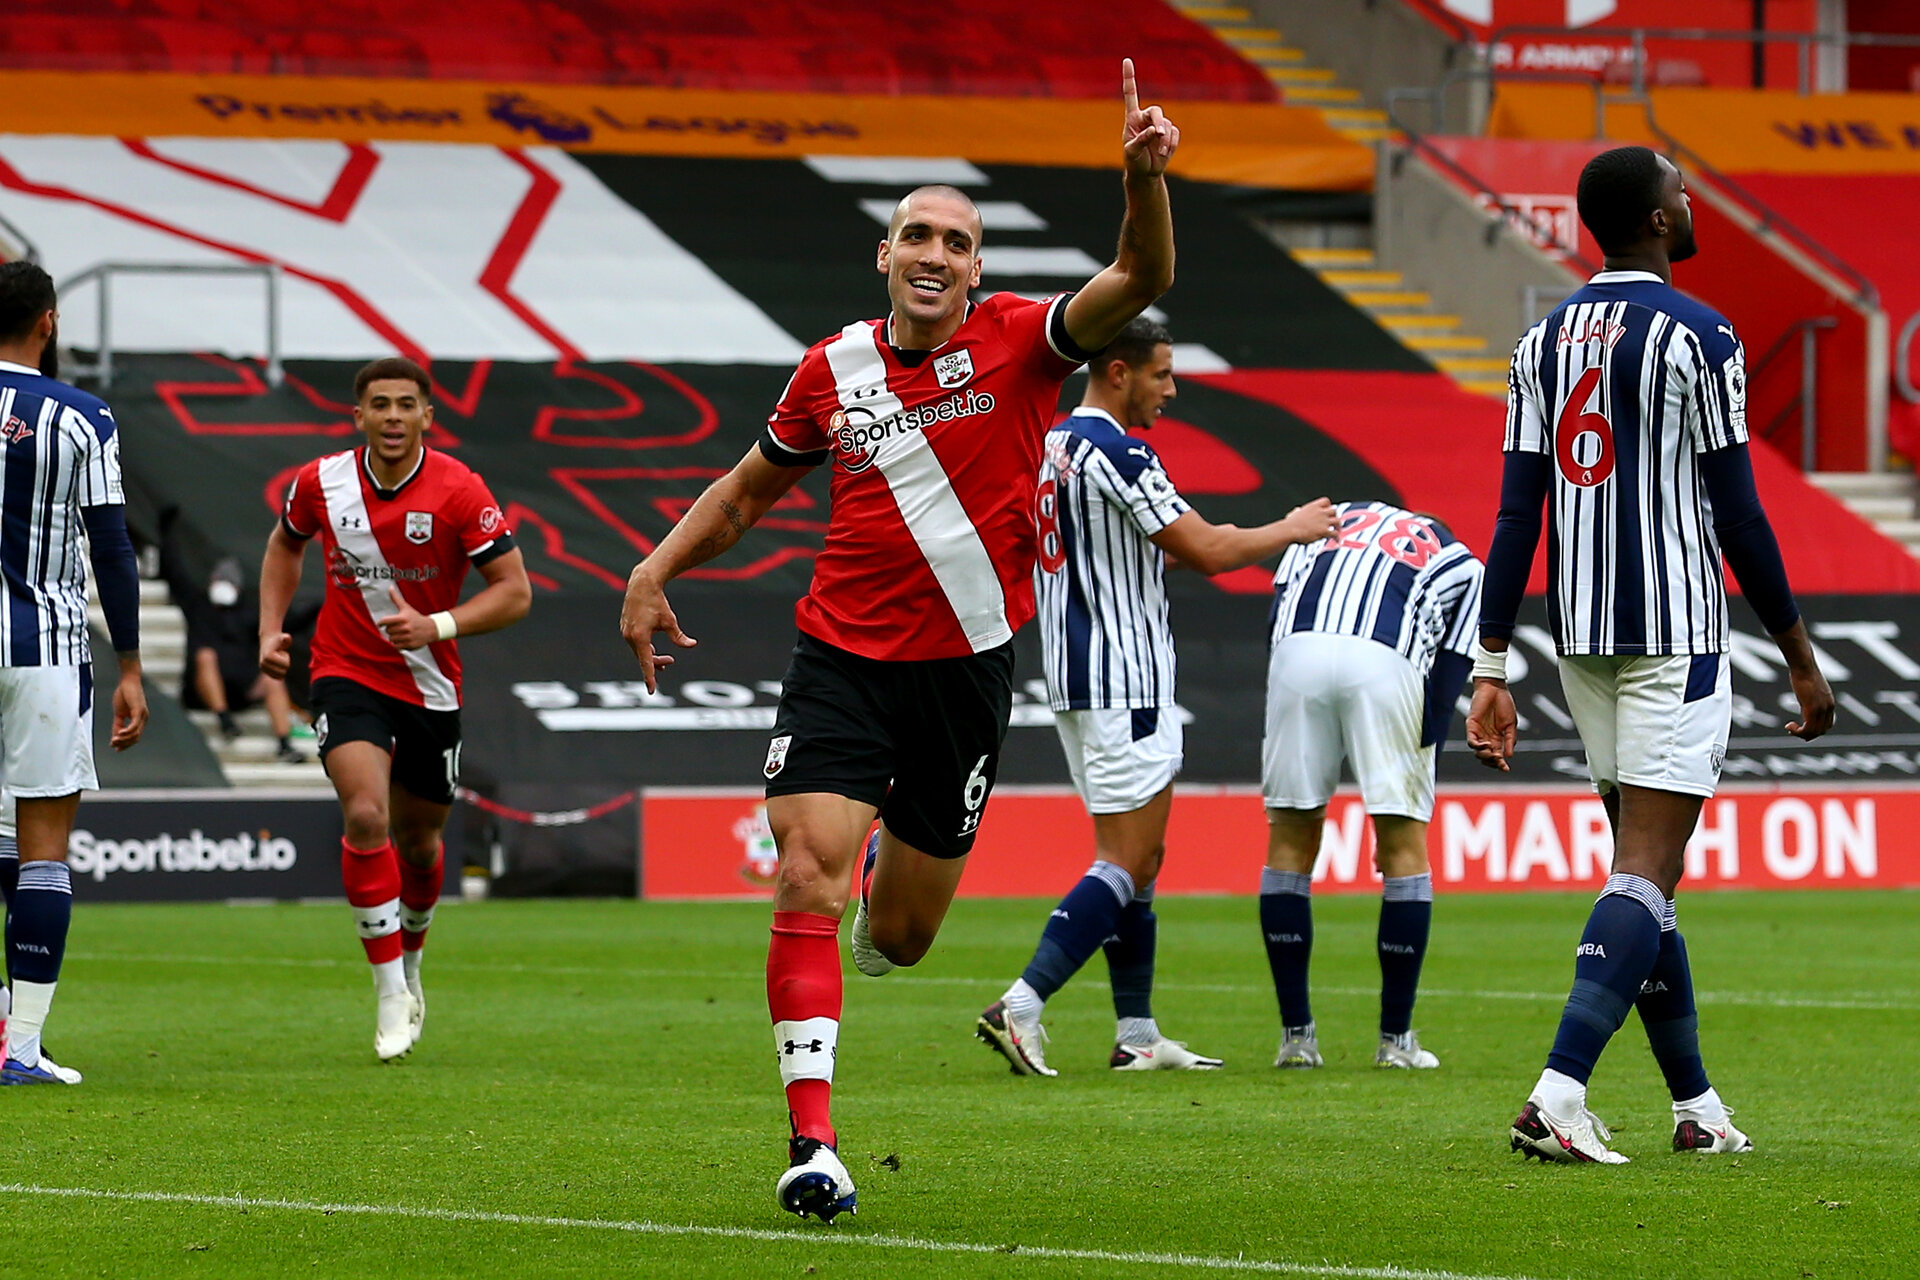 SOUTHAMPTON, ENGLAND - OCTOBER 04: Oriol Romeu goal celebration during the Premier League match between Southampton and West Bromwich Albion at St Mary's Stadium on October 4, 2020 in Southampton, United Kingdom. Sporting stadiums around the UK remain under strict restrictions due to the Coronavirus Pandemic as Government social distancing laws prohibit fans inside venues resulting in games being played behind closed doors. (Photo by Matt Watson/Southampton FC via Getty Images)